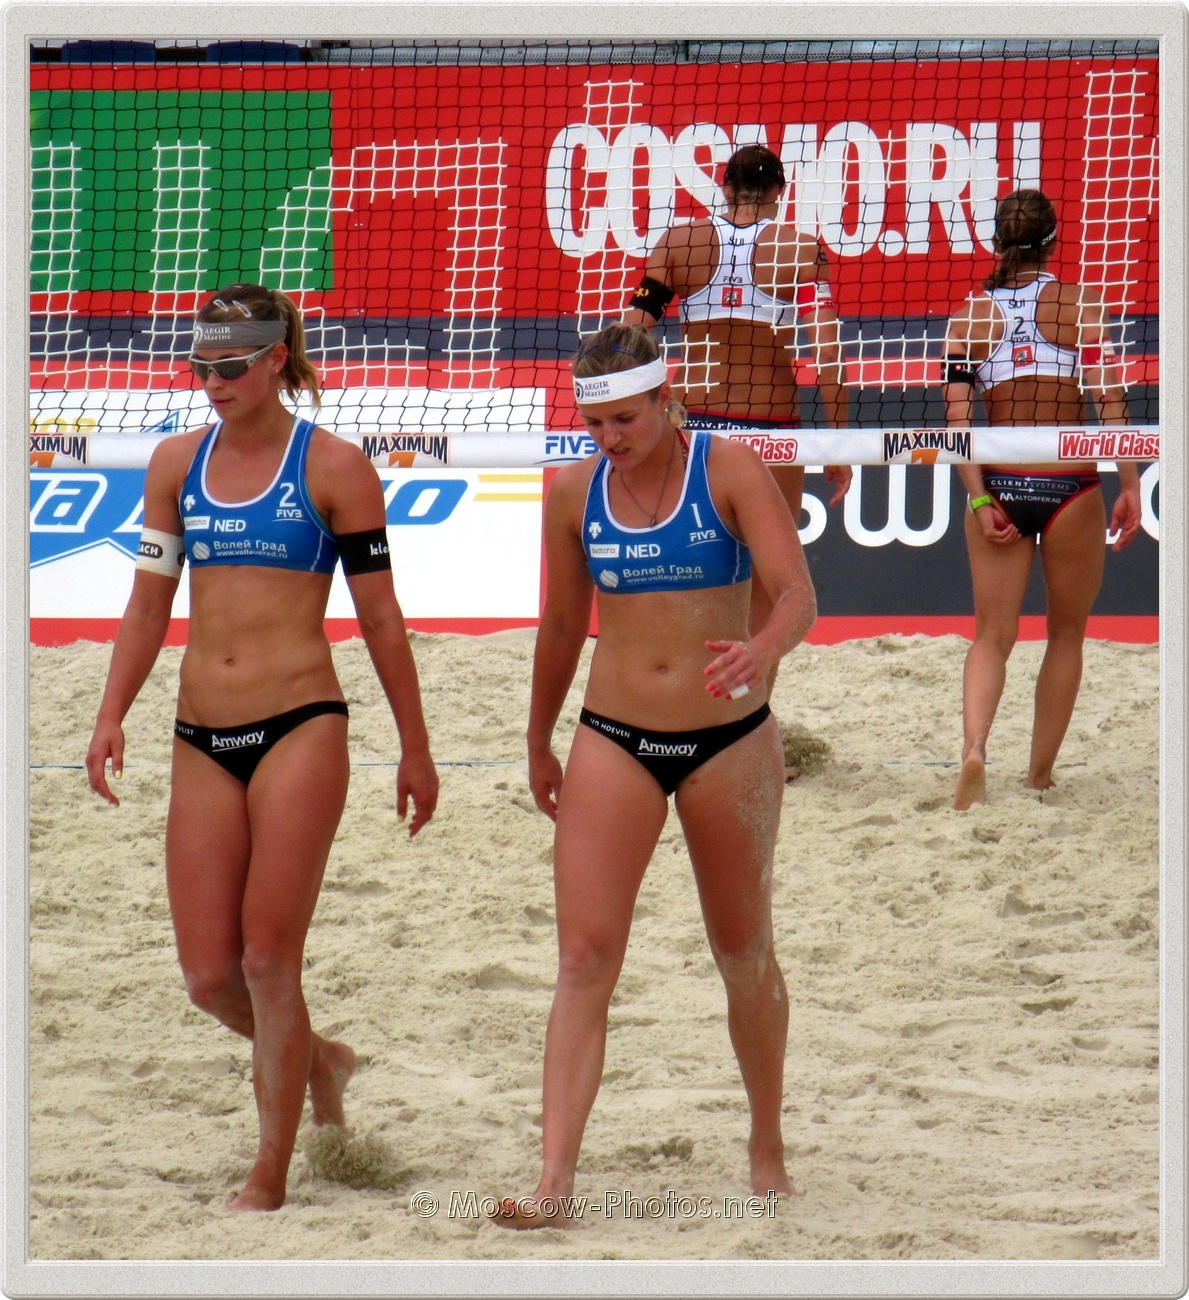 Dutch beach volleyball team in Moscow